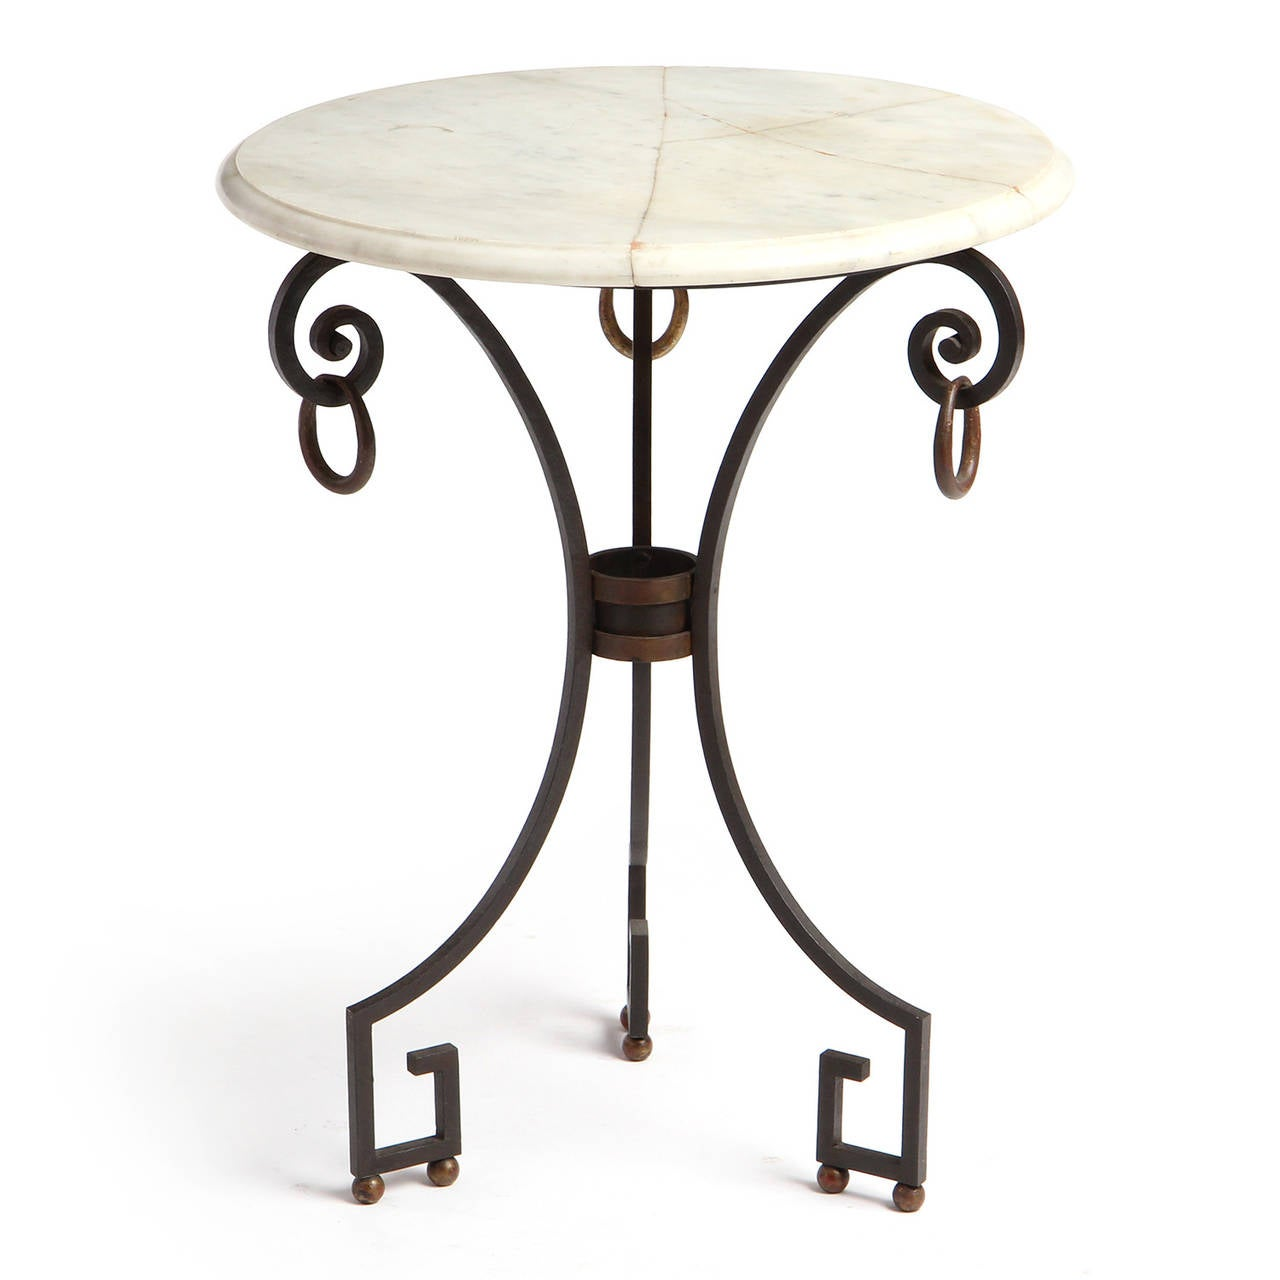 An occasional table having a wrought iron base with Greek Key feet and brass ball and ring embellishment supporting a round cream marble top with a beveled edge.